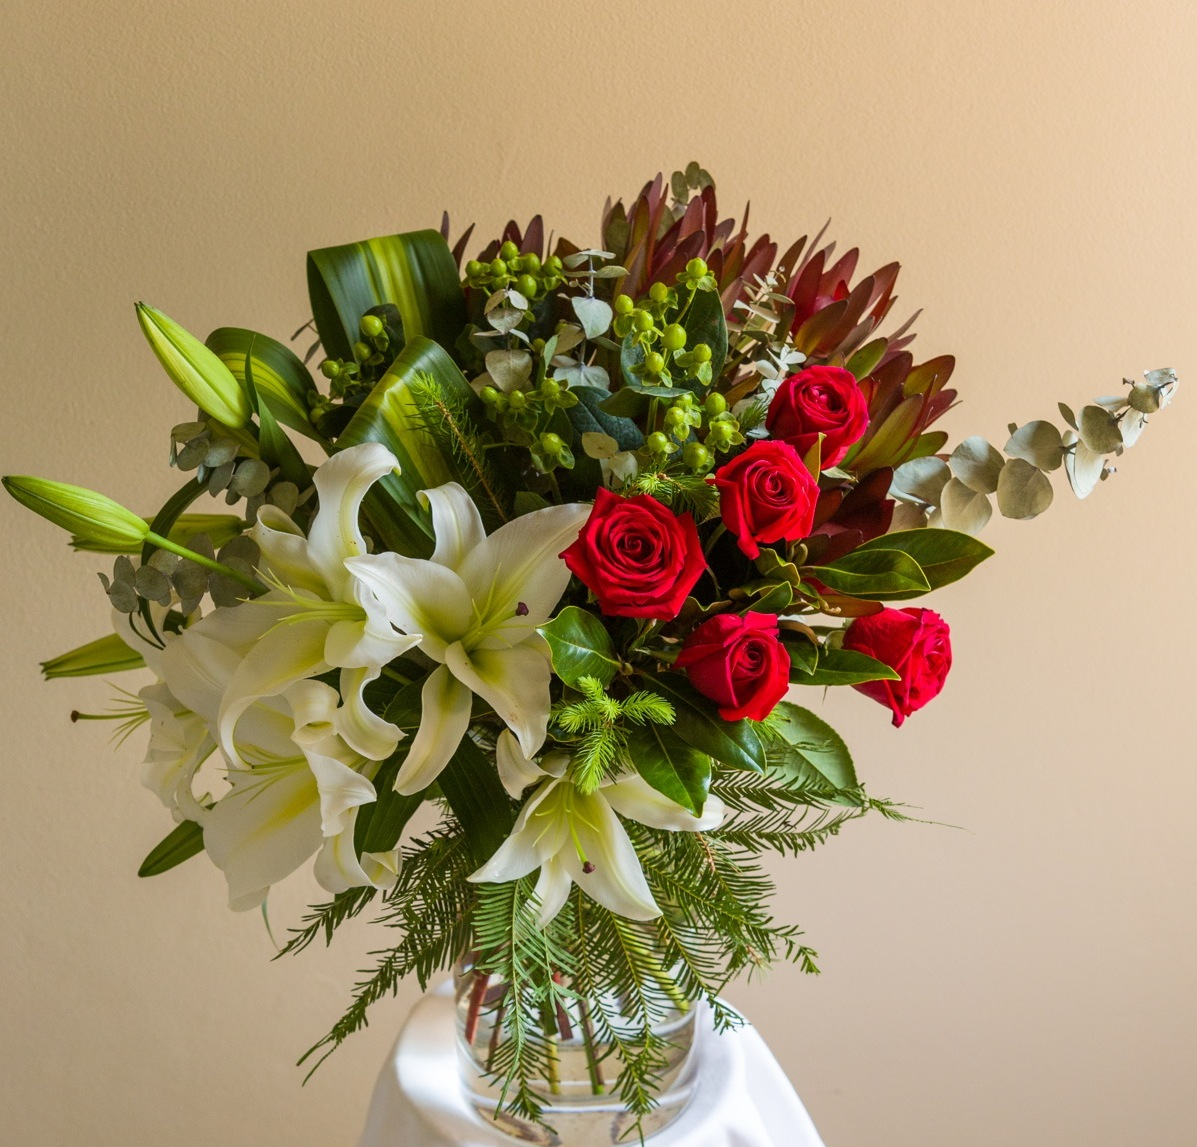 Bouquet of red white and green flowers